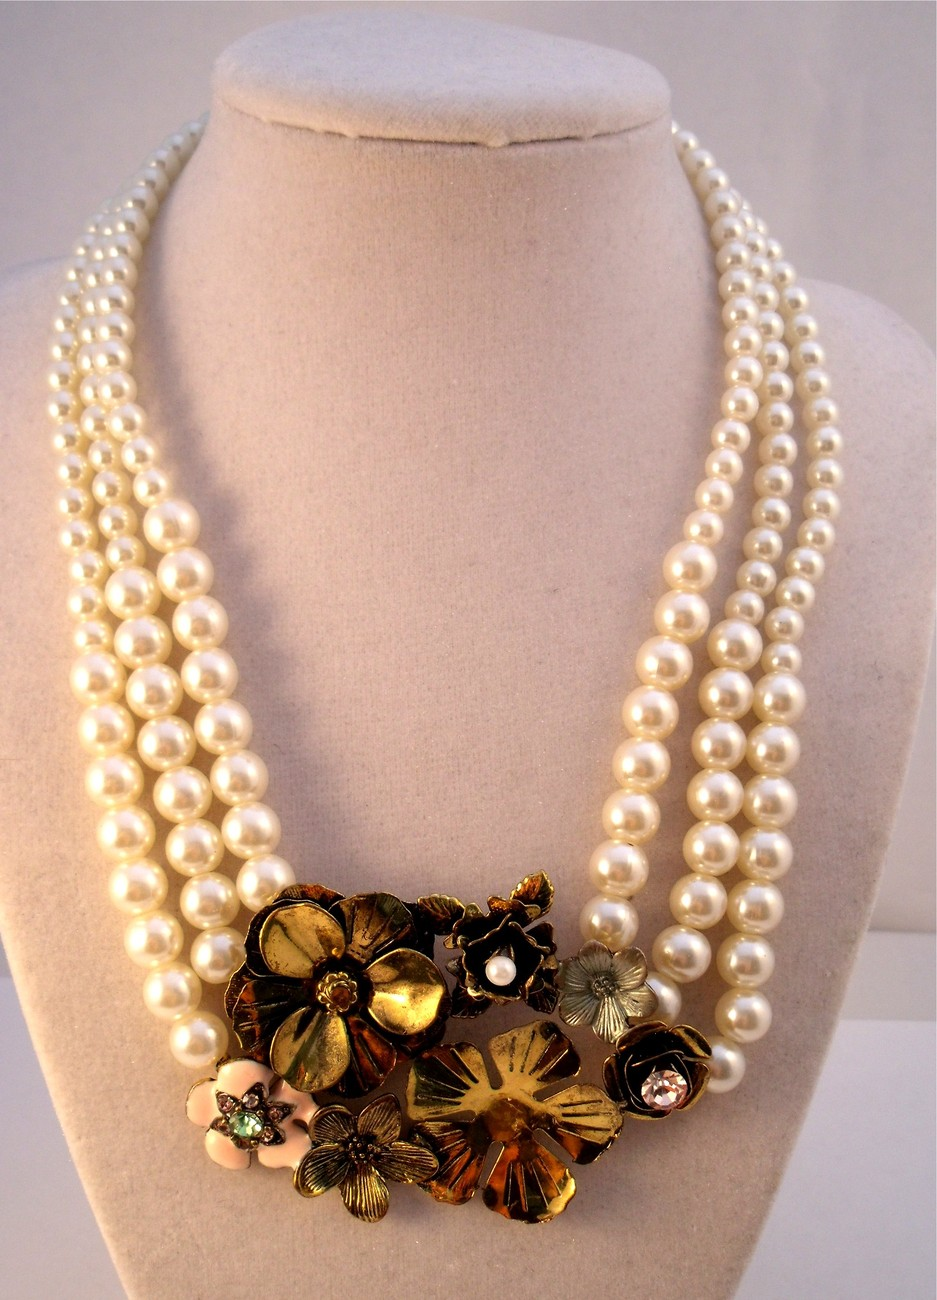 Triple strand faux pearl necklace with flower collage center